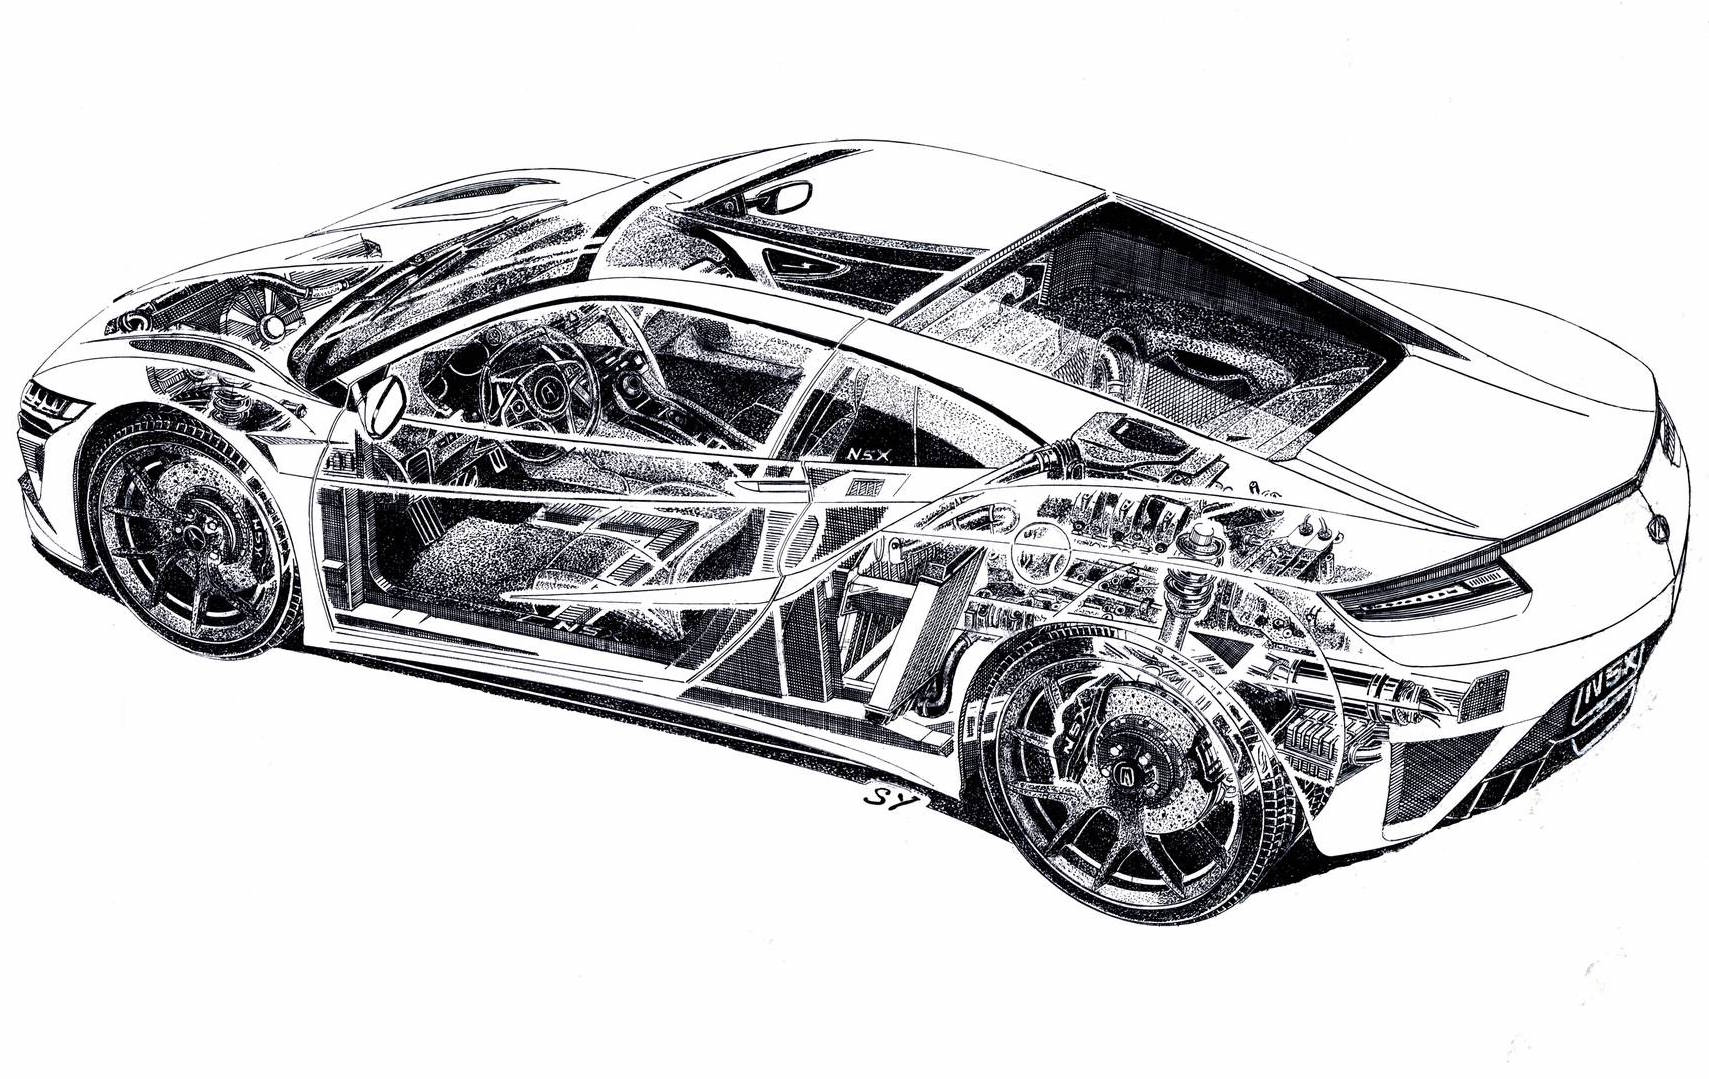 Acura NSX Pencil Sketch